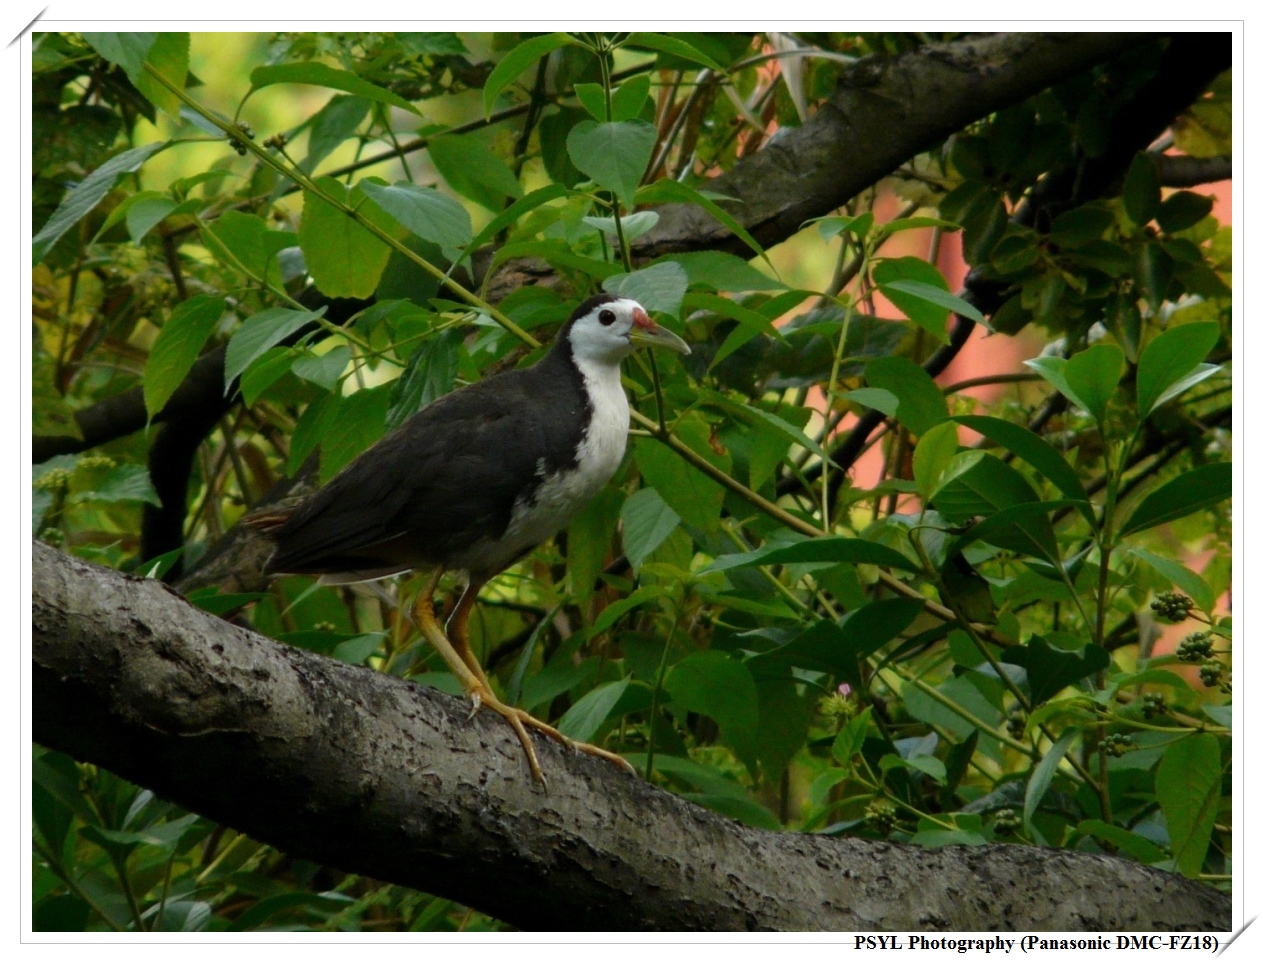 White-breasted Waterhen (Amaurornis phoenicurus) - 白腹秧雞